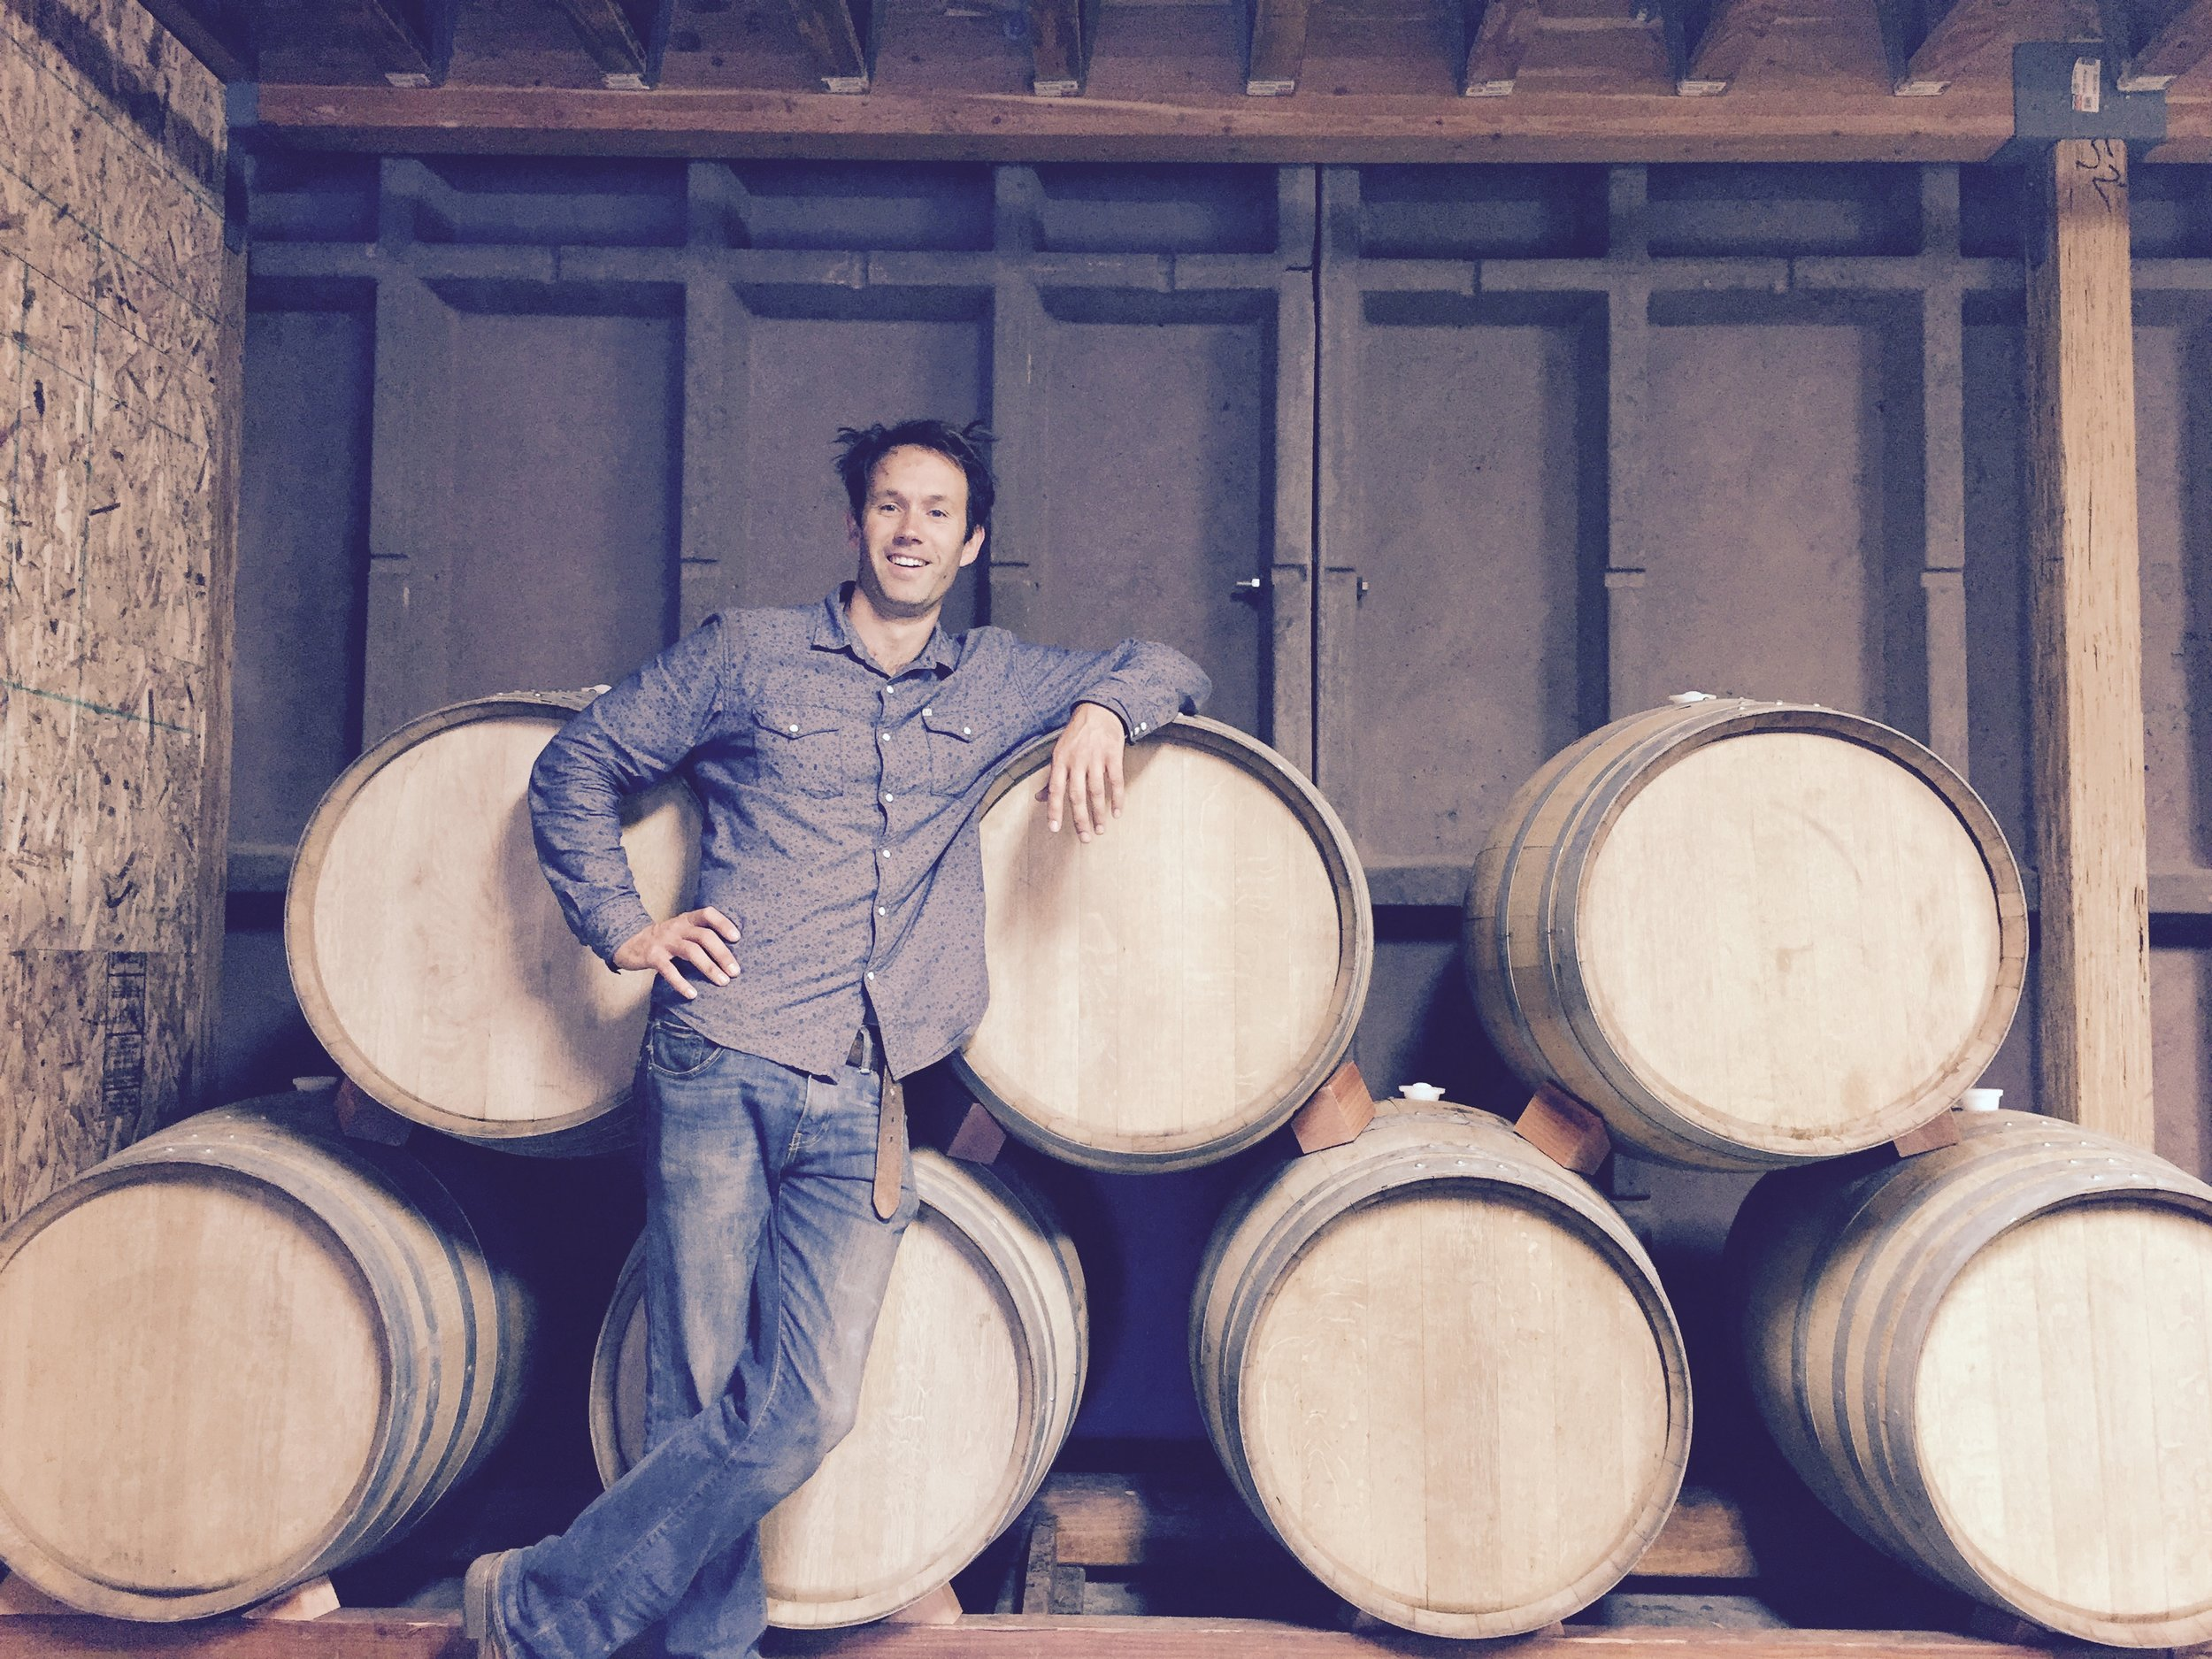 dylan in front of barrels.jpg